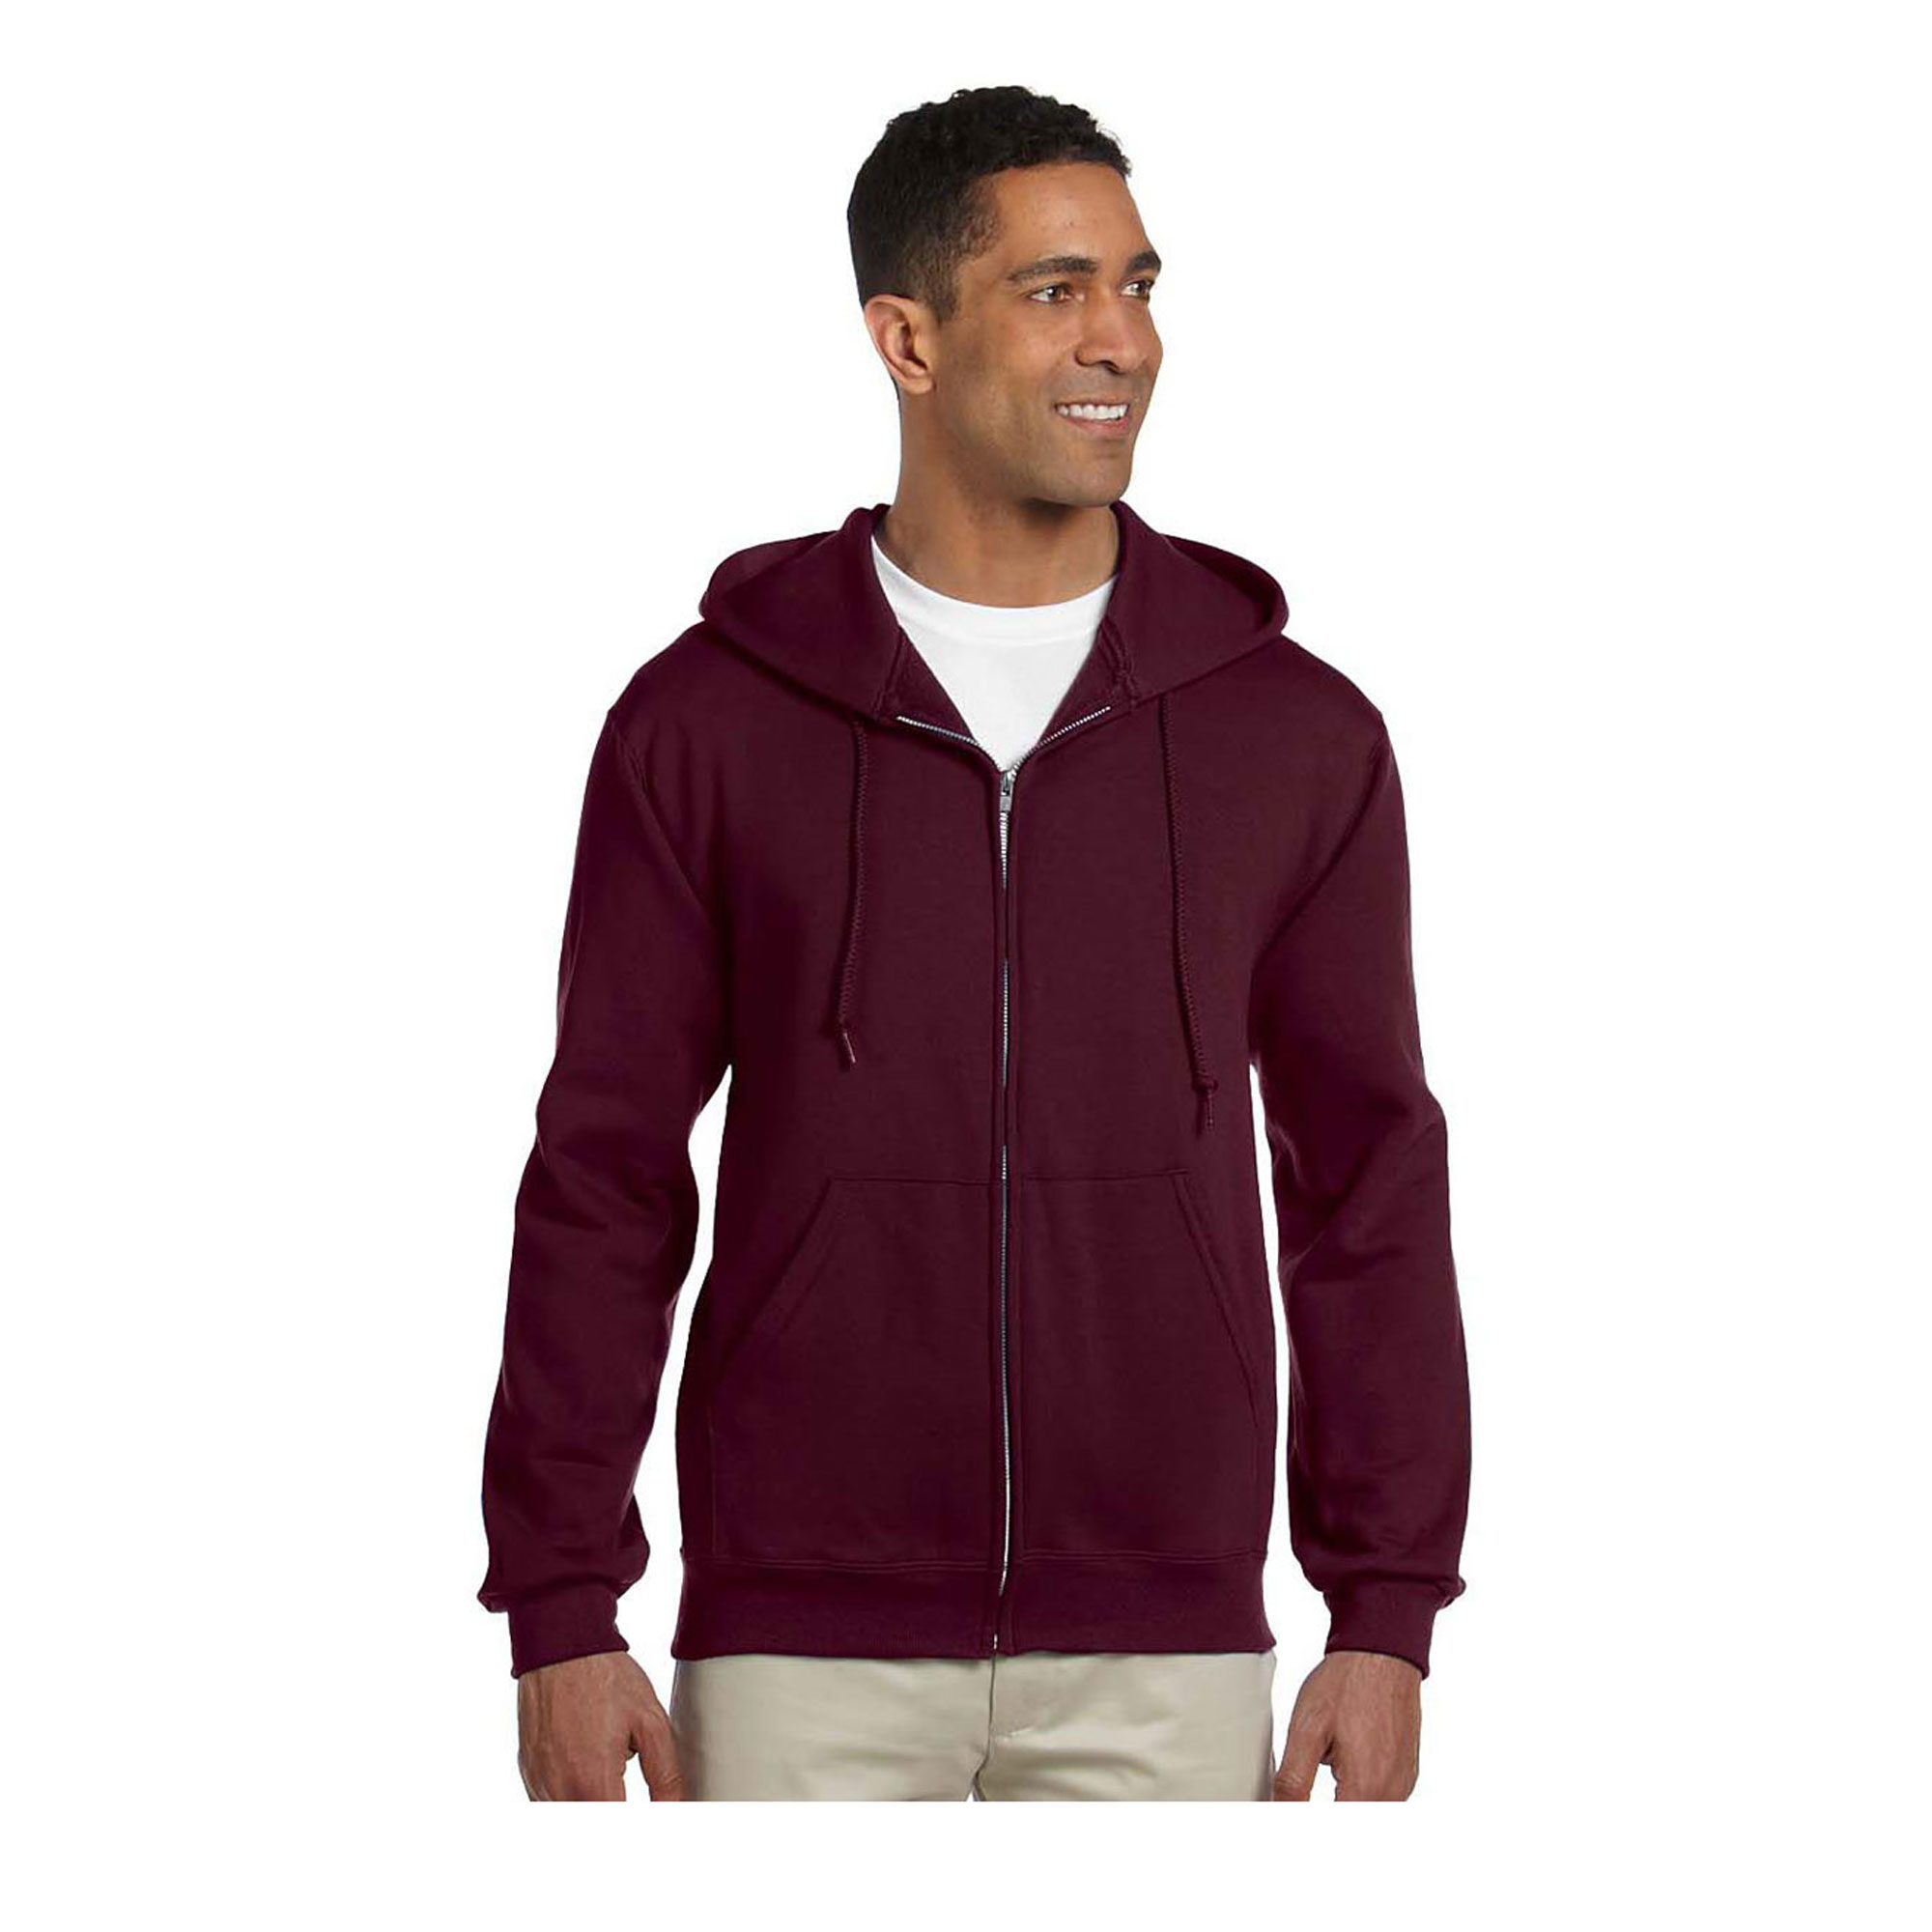 Jerzees Men's Front Pouch Pockets Hooded Sweatshirt, Styl...